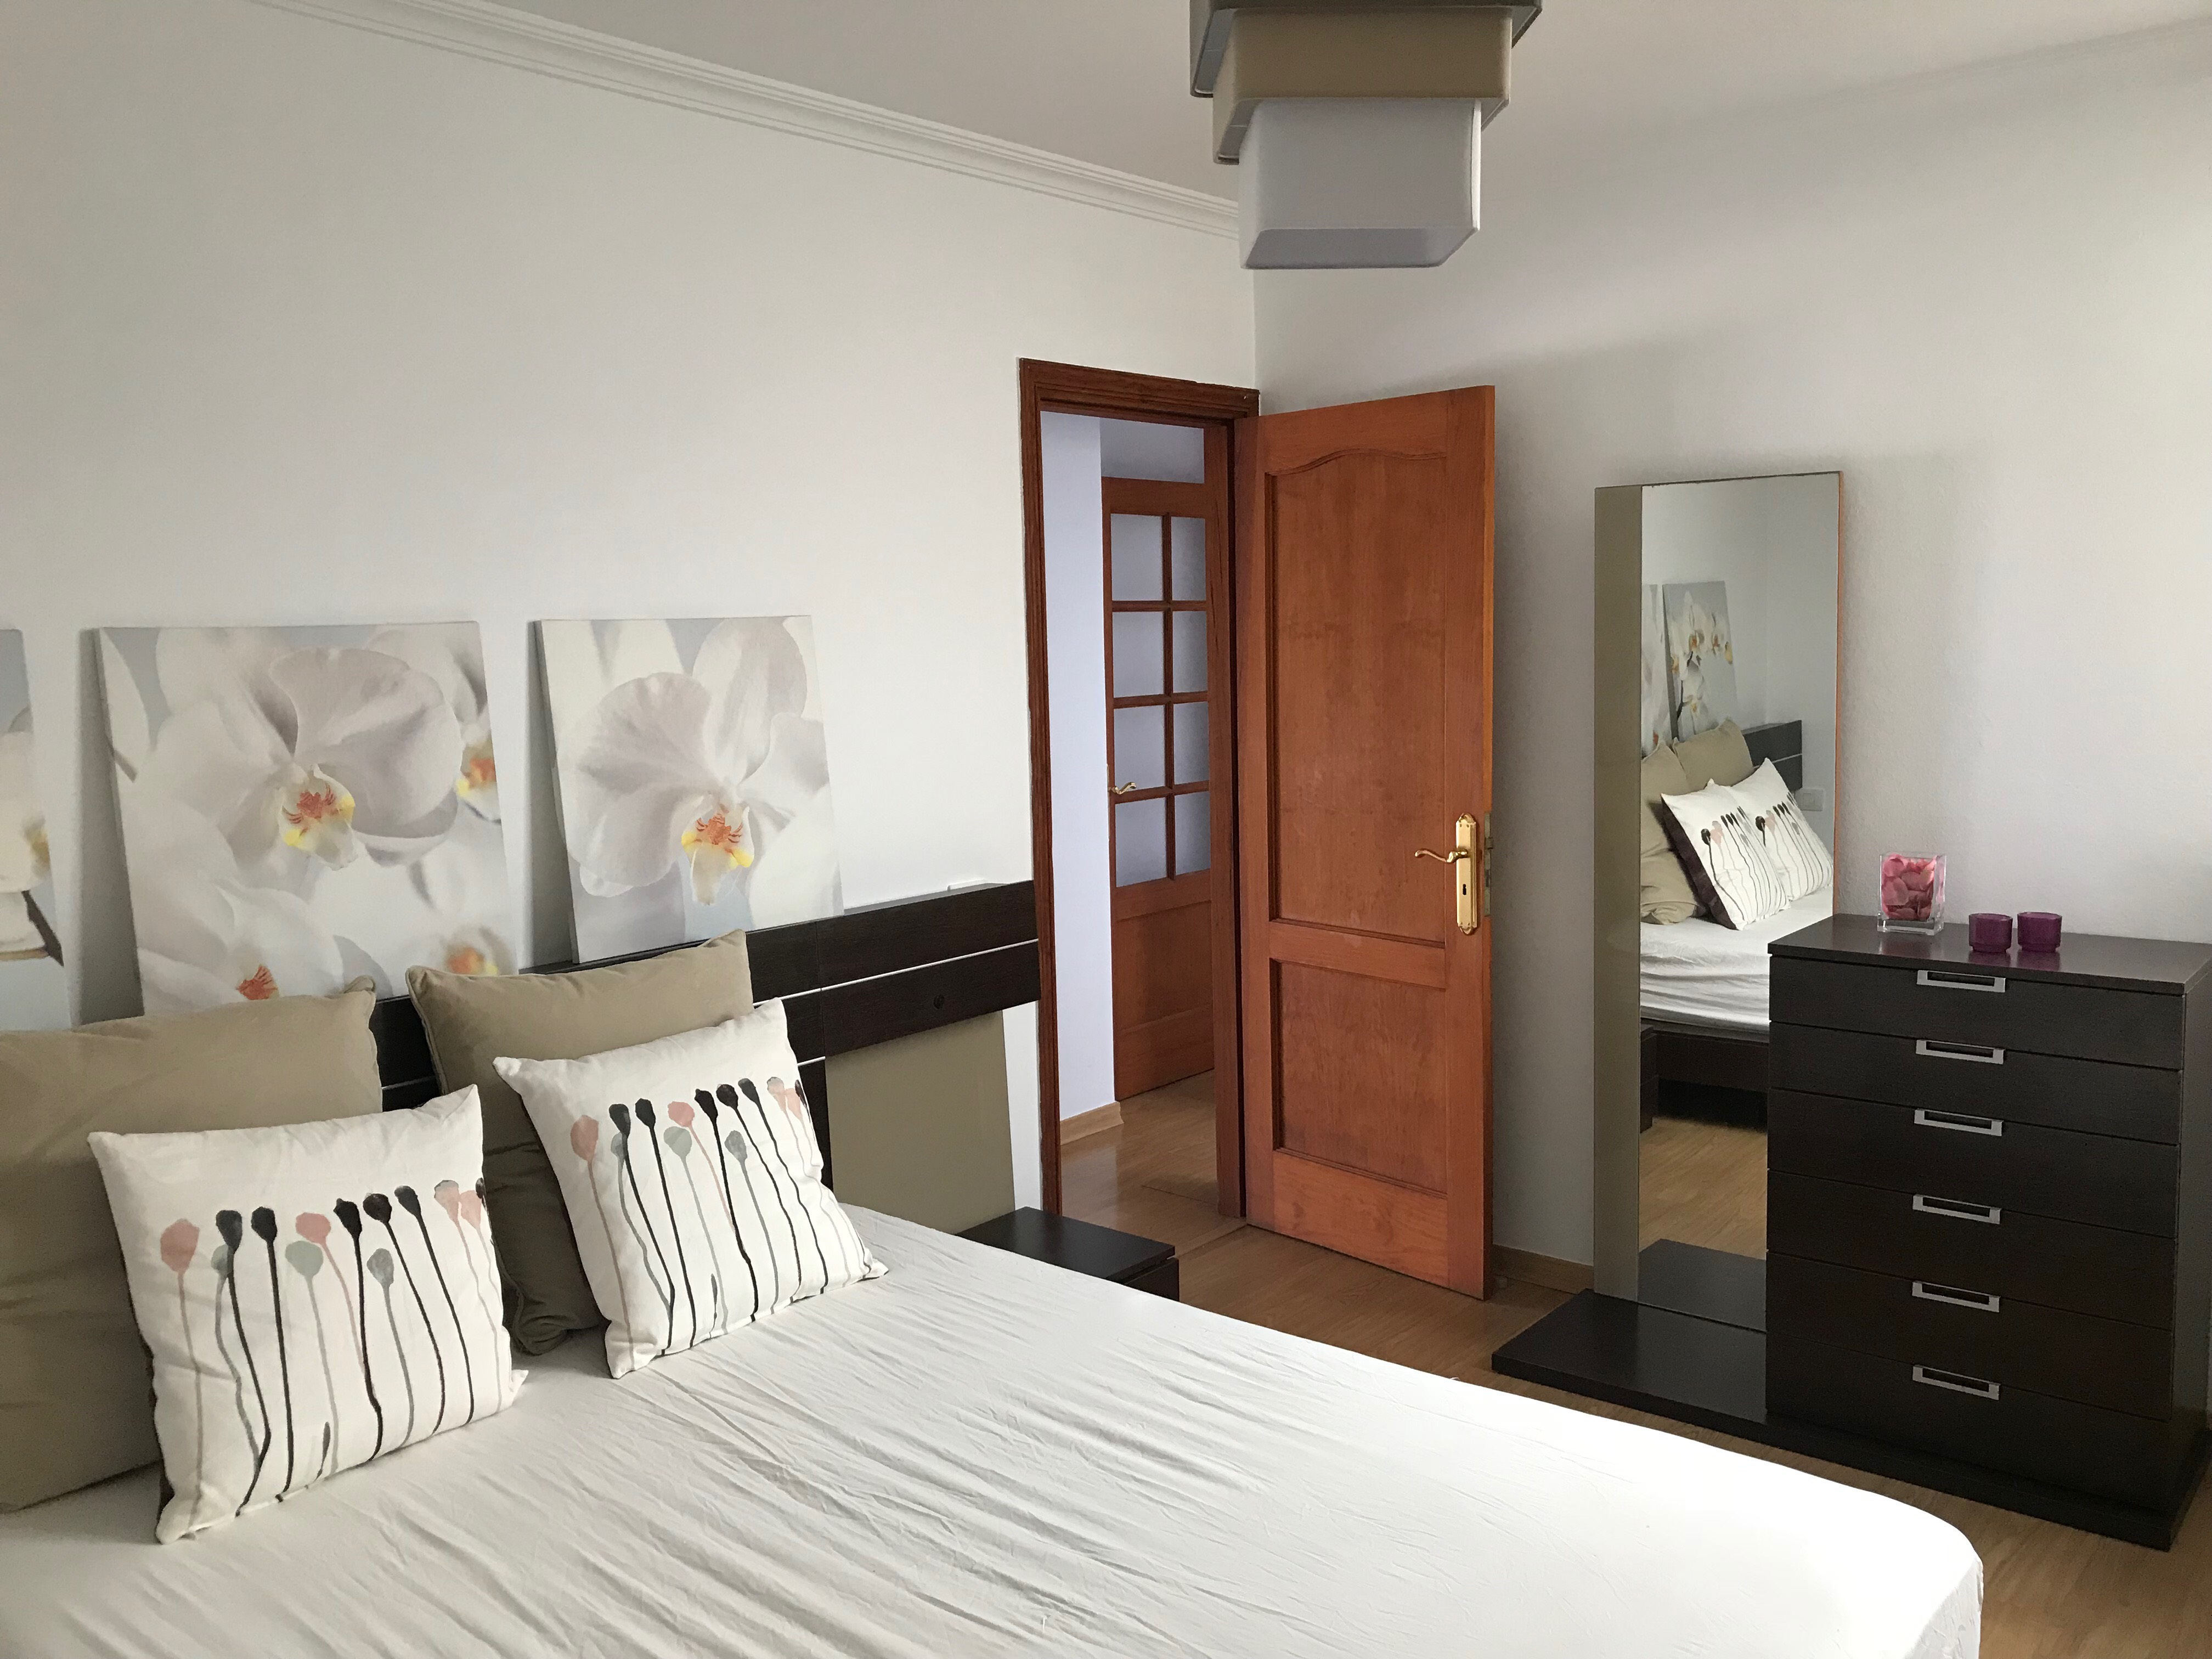 Penthouse Los Cristianos Miete Schlafzimmer